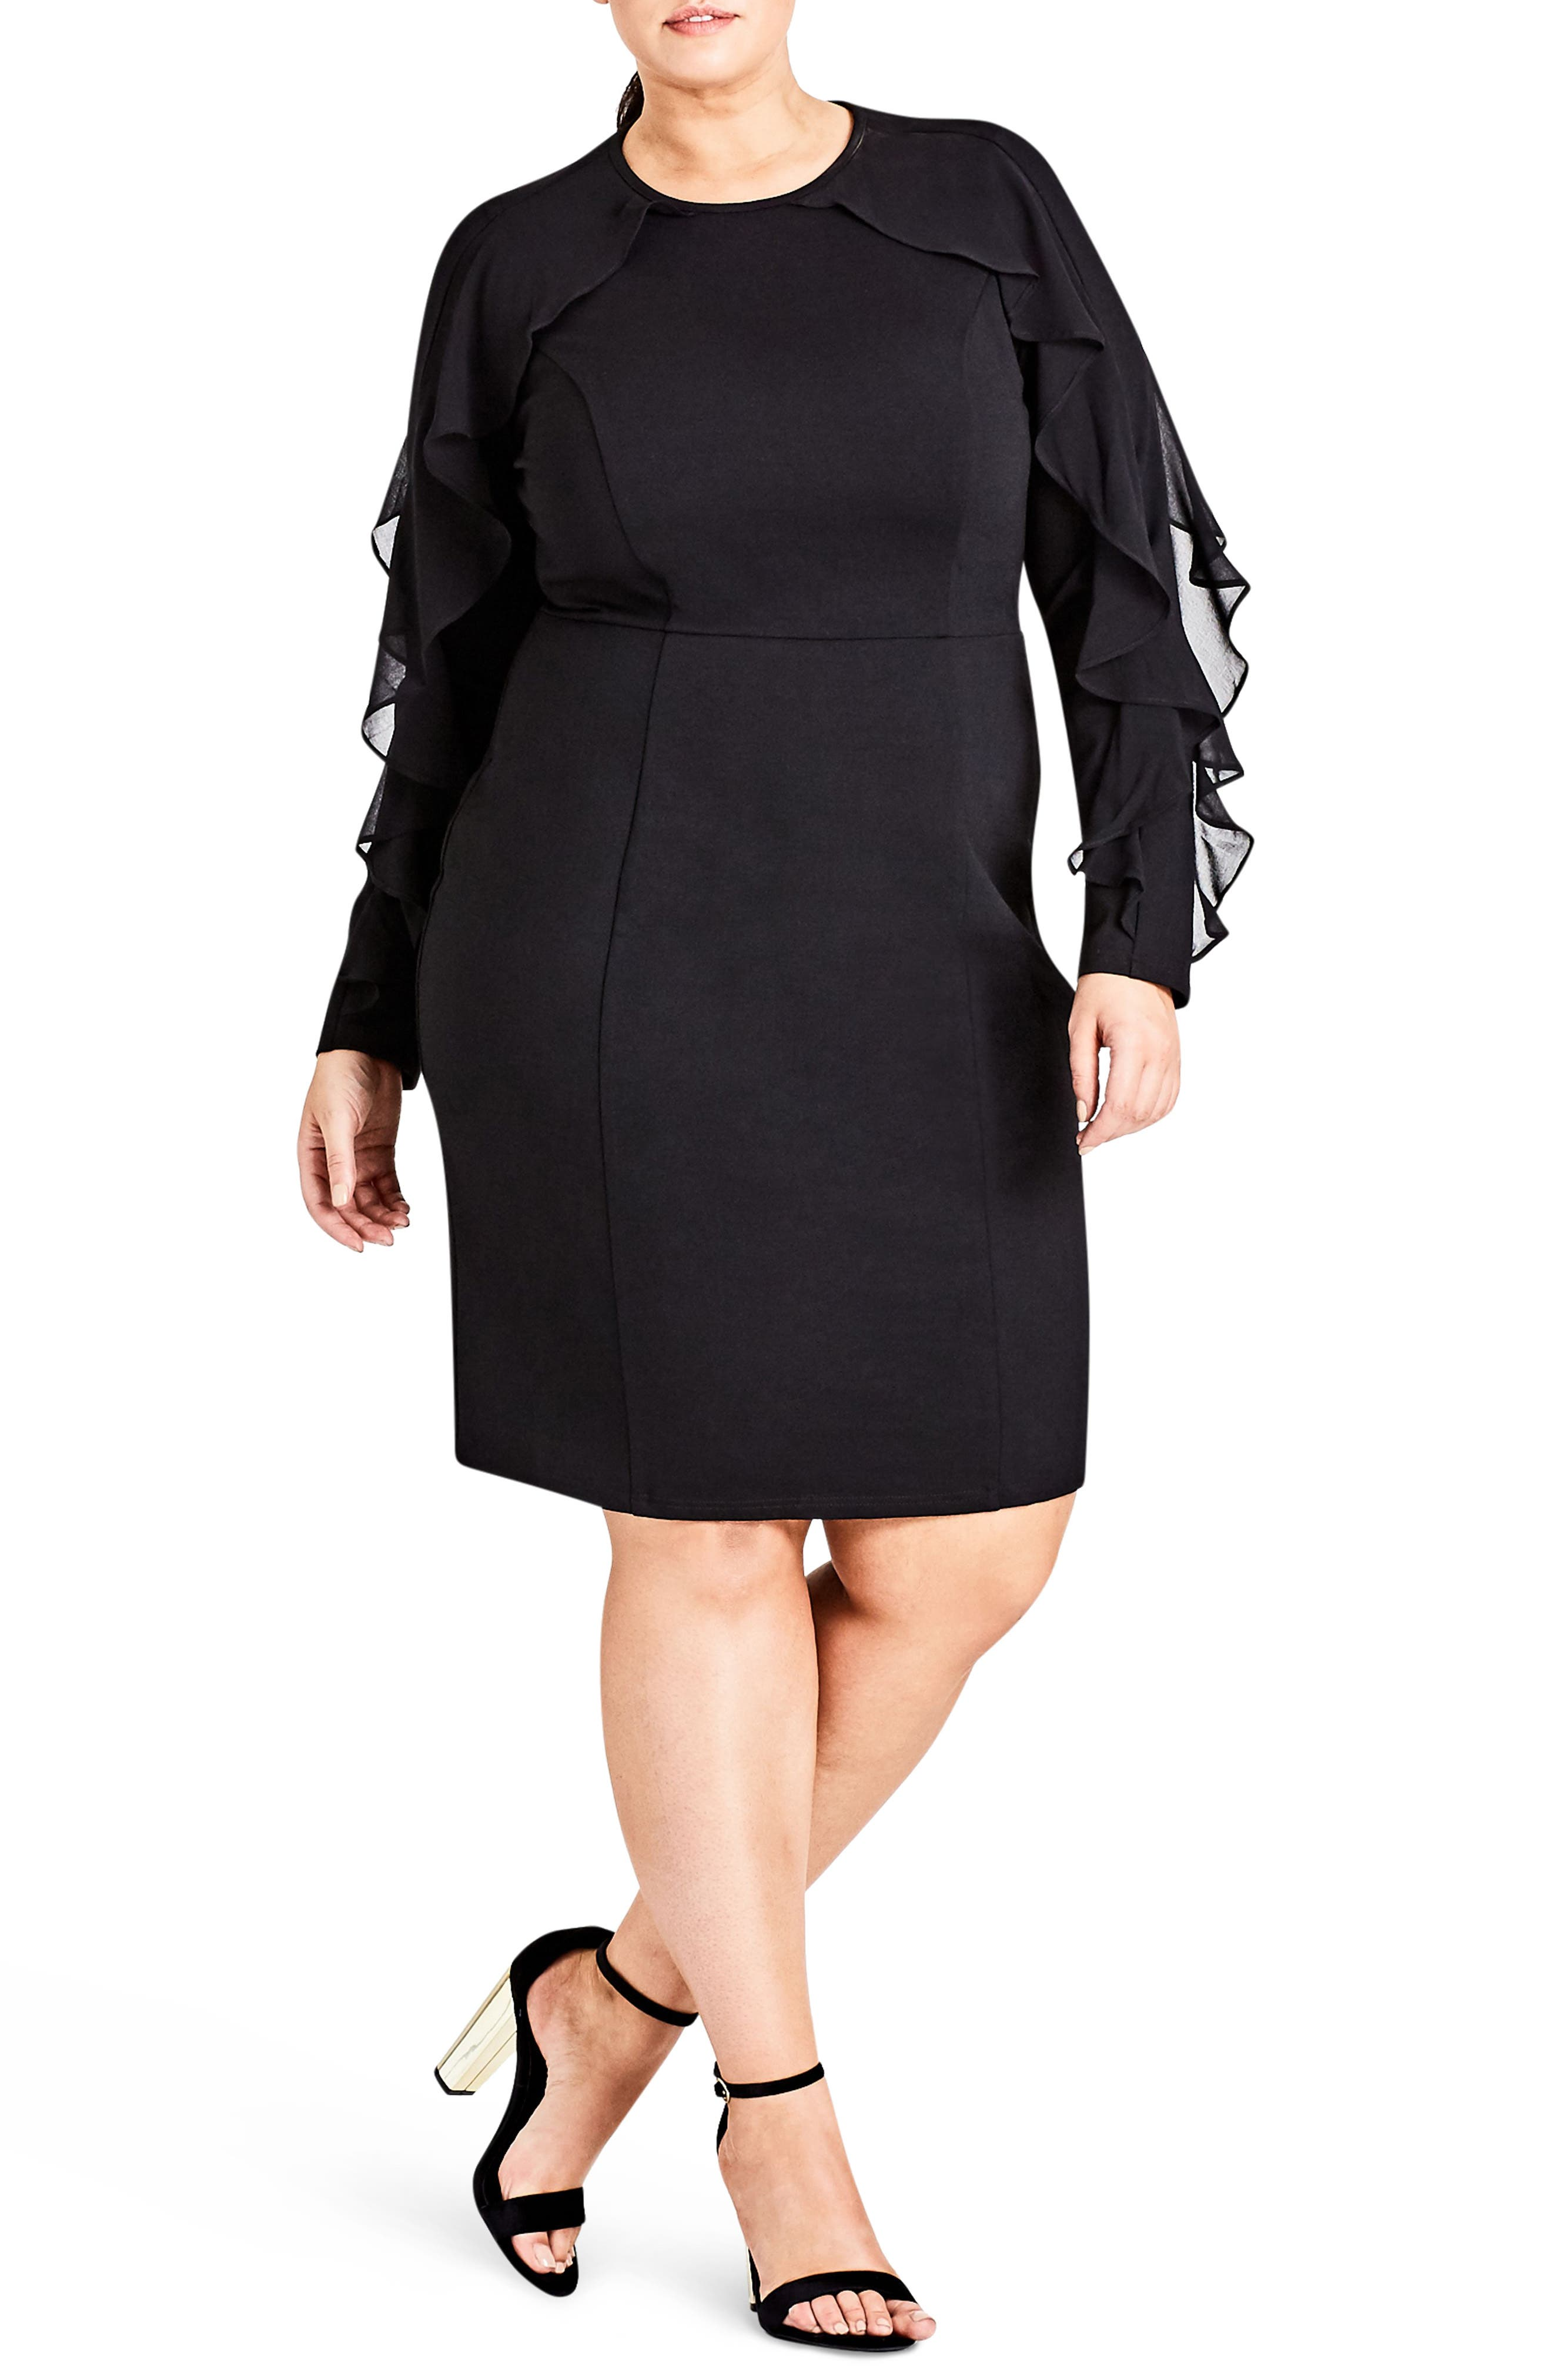 Chic City Romantic Sleeve Sheath Dress,                         Main,                         color, Black